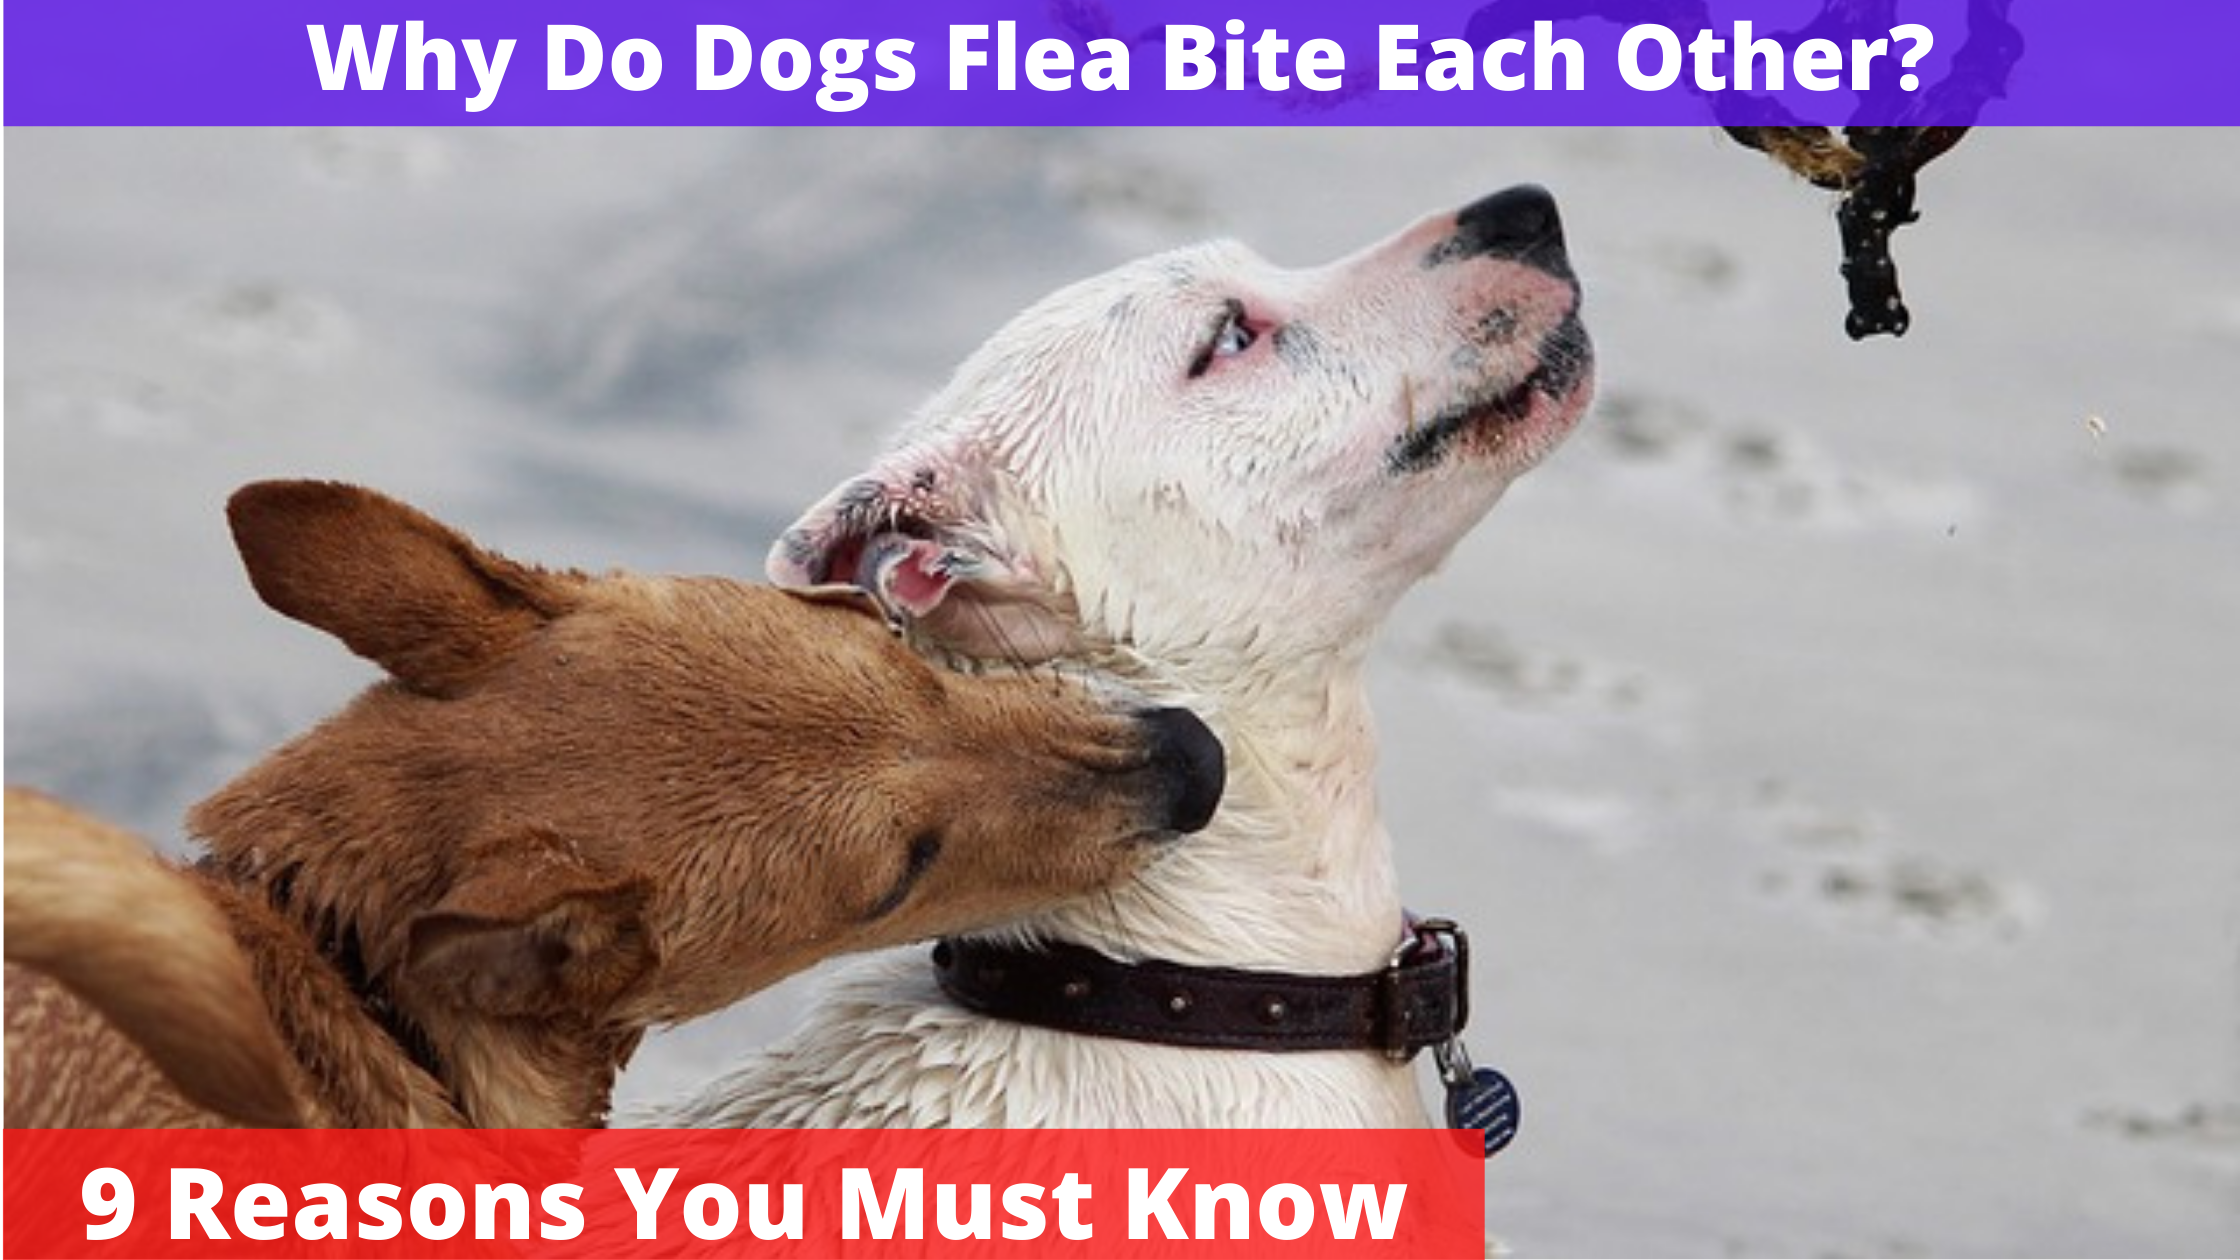 Why Do Dogs Flea Bite Each Other